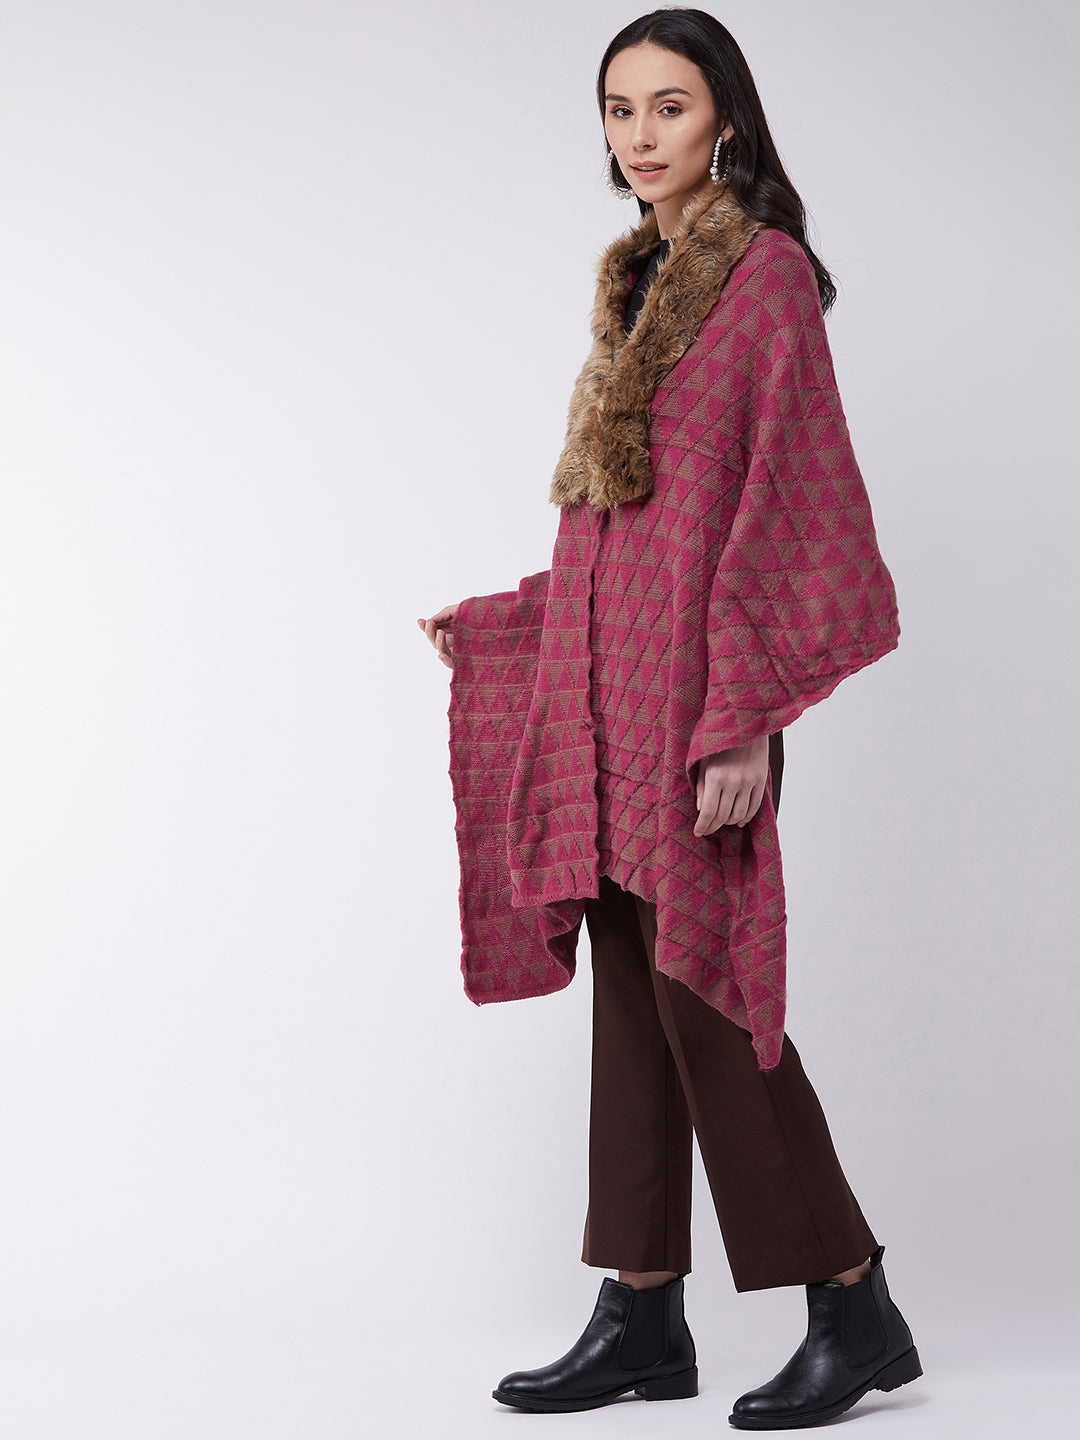 Pink Geometric Faux Fur Cape